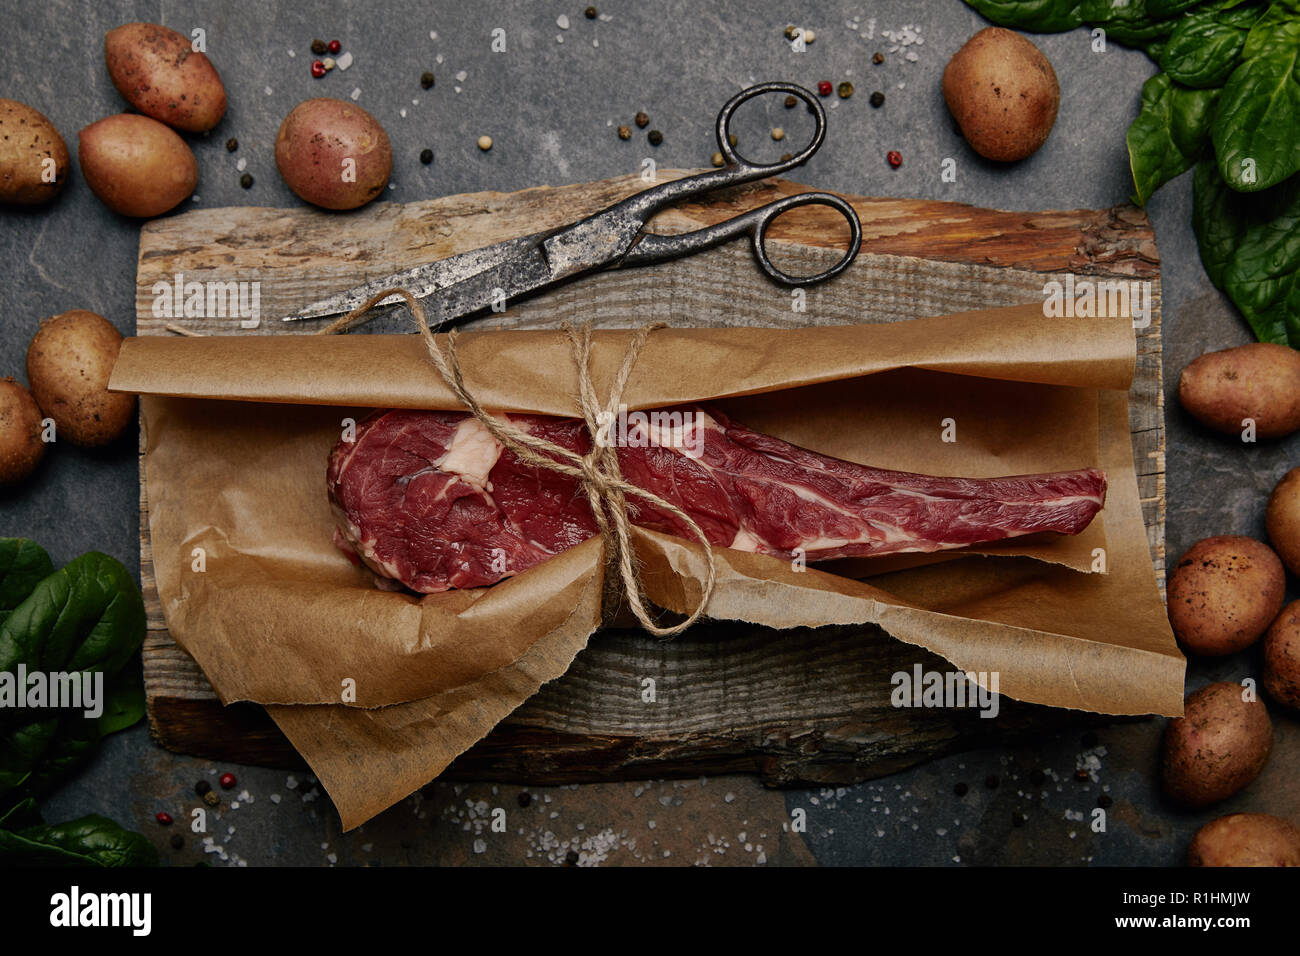 top view of raw rib eye steak wrapped in baking paper on wooden board with spices and potatoes - Stock Image